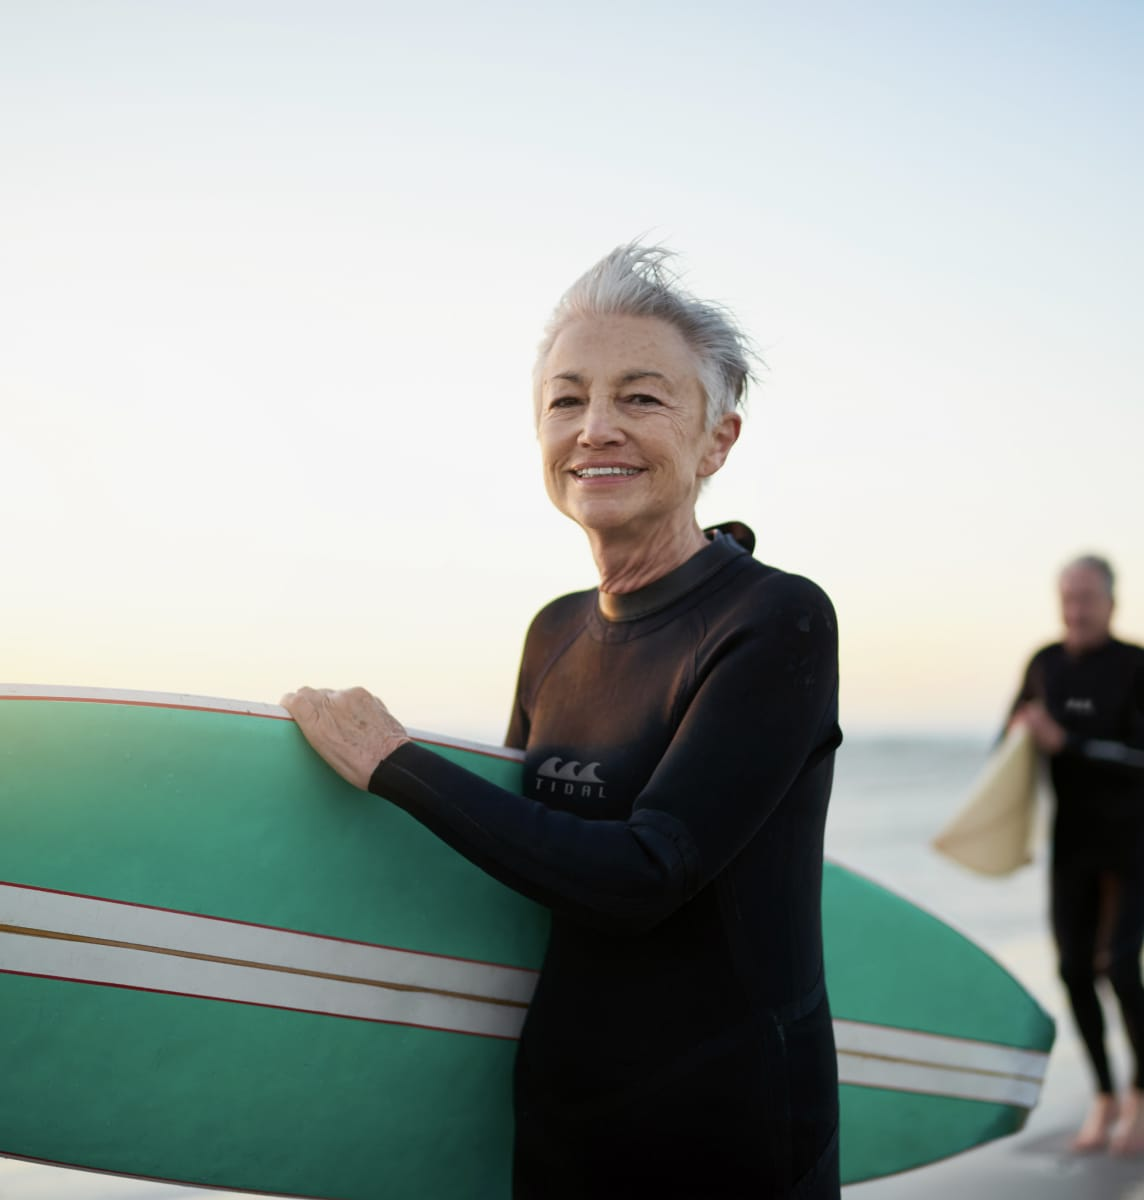 older woman holding surfboard on beach